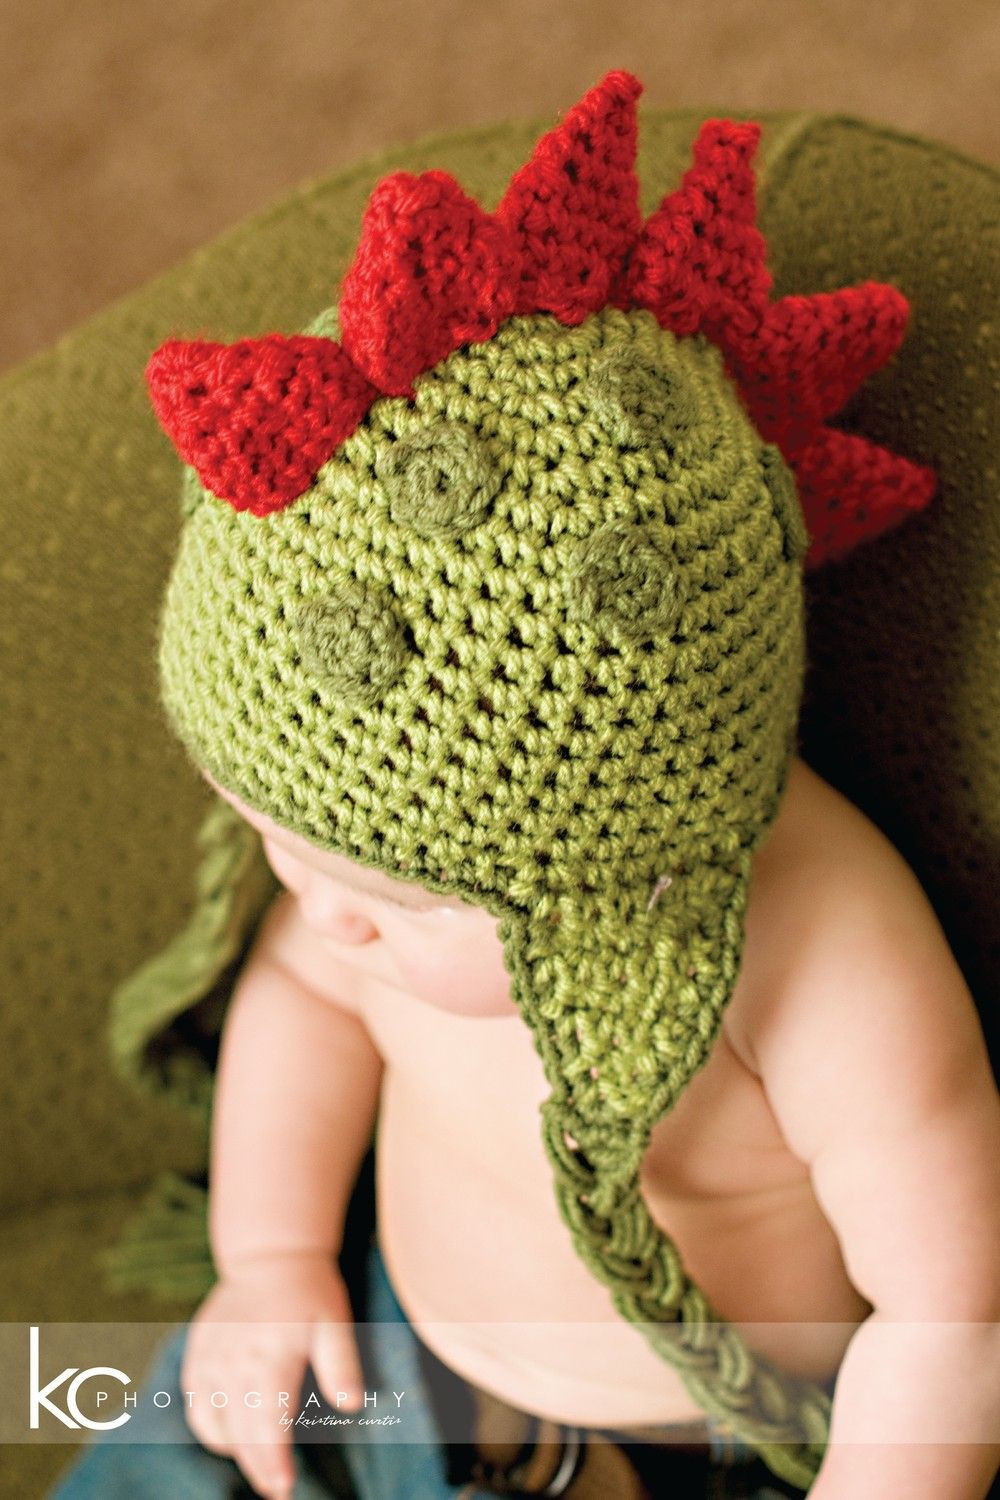 Crochet pattern dinosaur hat 5 sizes included newborn to adult crochet pattern dinosaur hat sizes crochet hat pattern includes sizes newborn to adult bankloansurffo Gallery